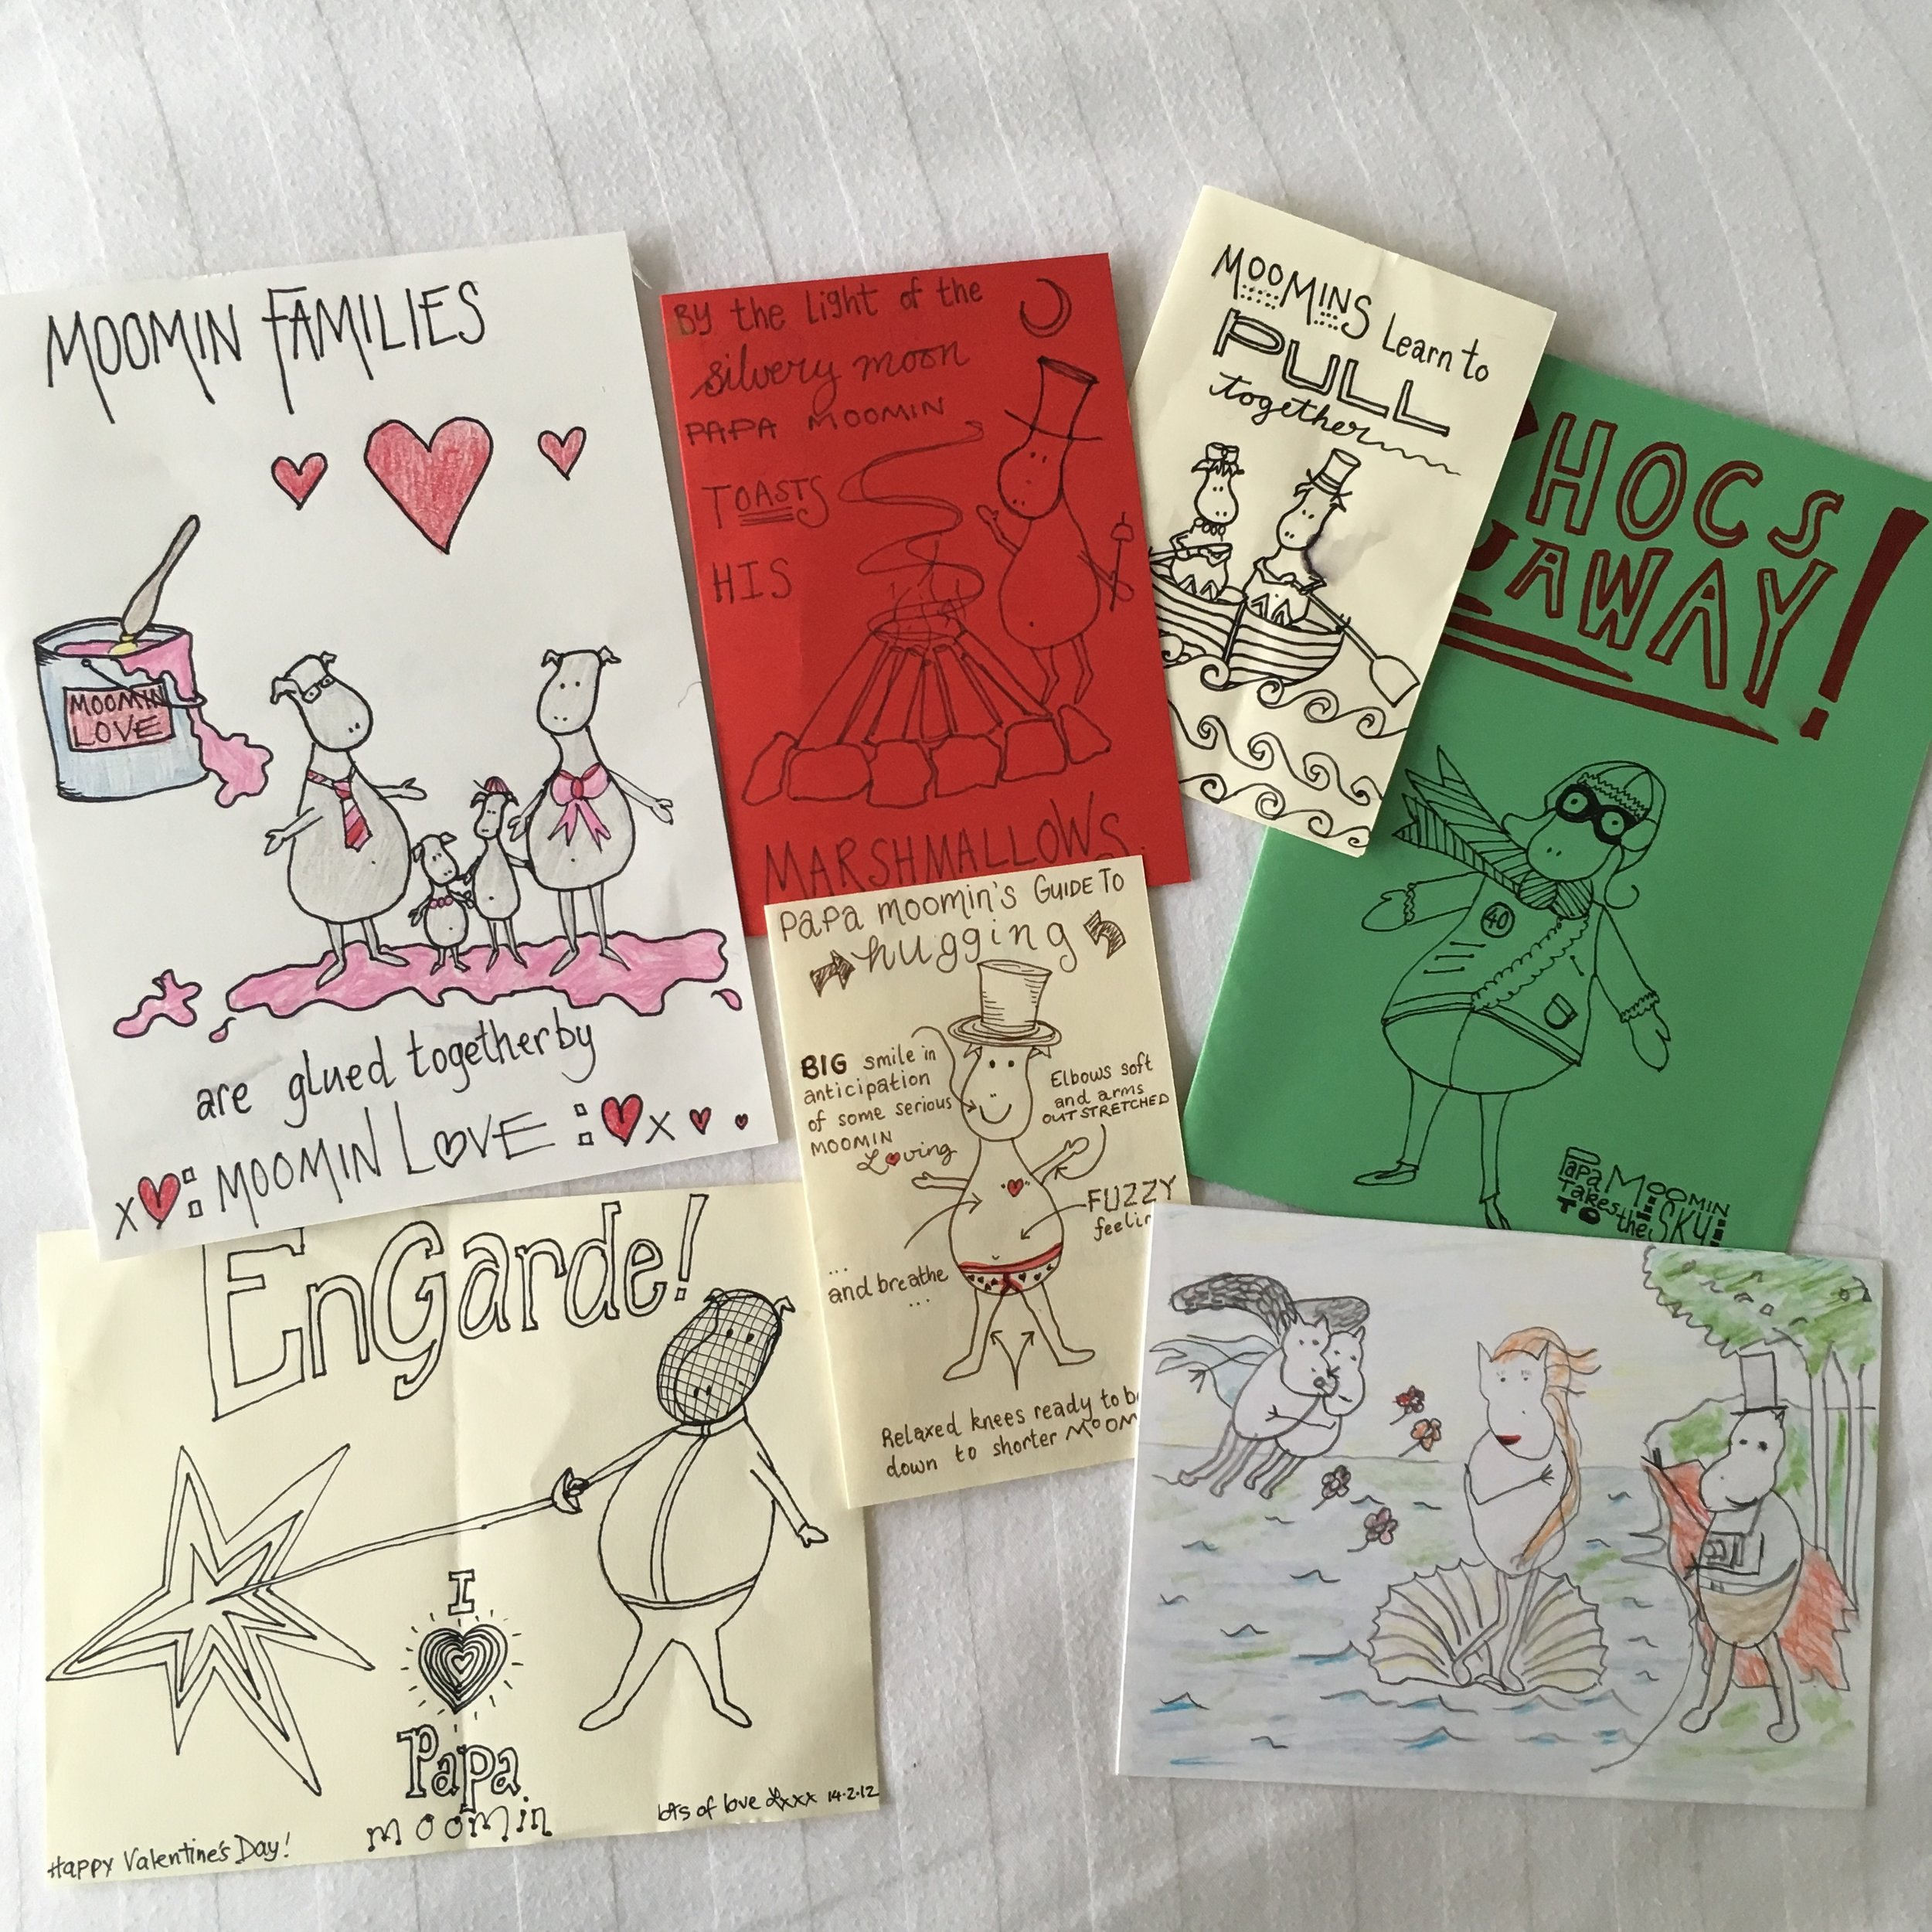 This is a sample of how we do Valentine's Day - Homemade Moomin Cards. Like our family sayings - I have no recollection how we started this but after 16 years we're amassing quite a collection! They no longer look like Moomins but strange creatures that find themselves in a variety of unusual situations.